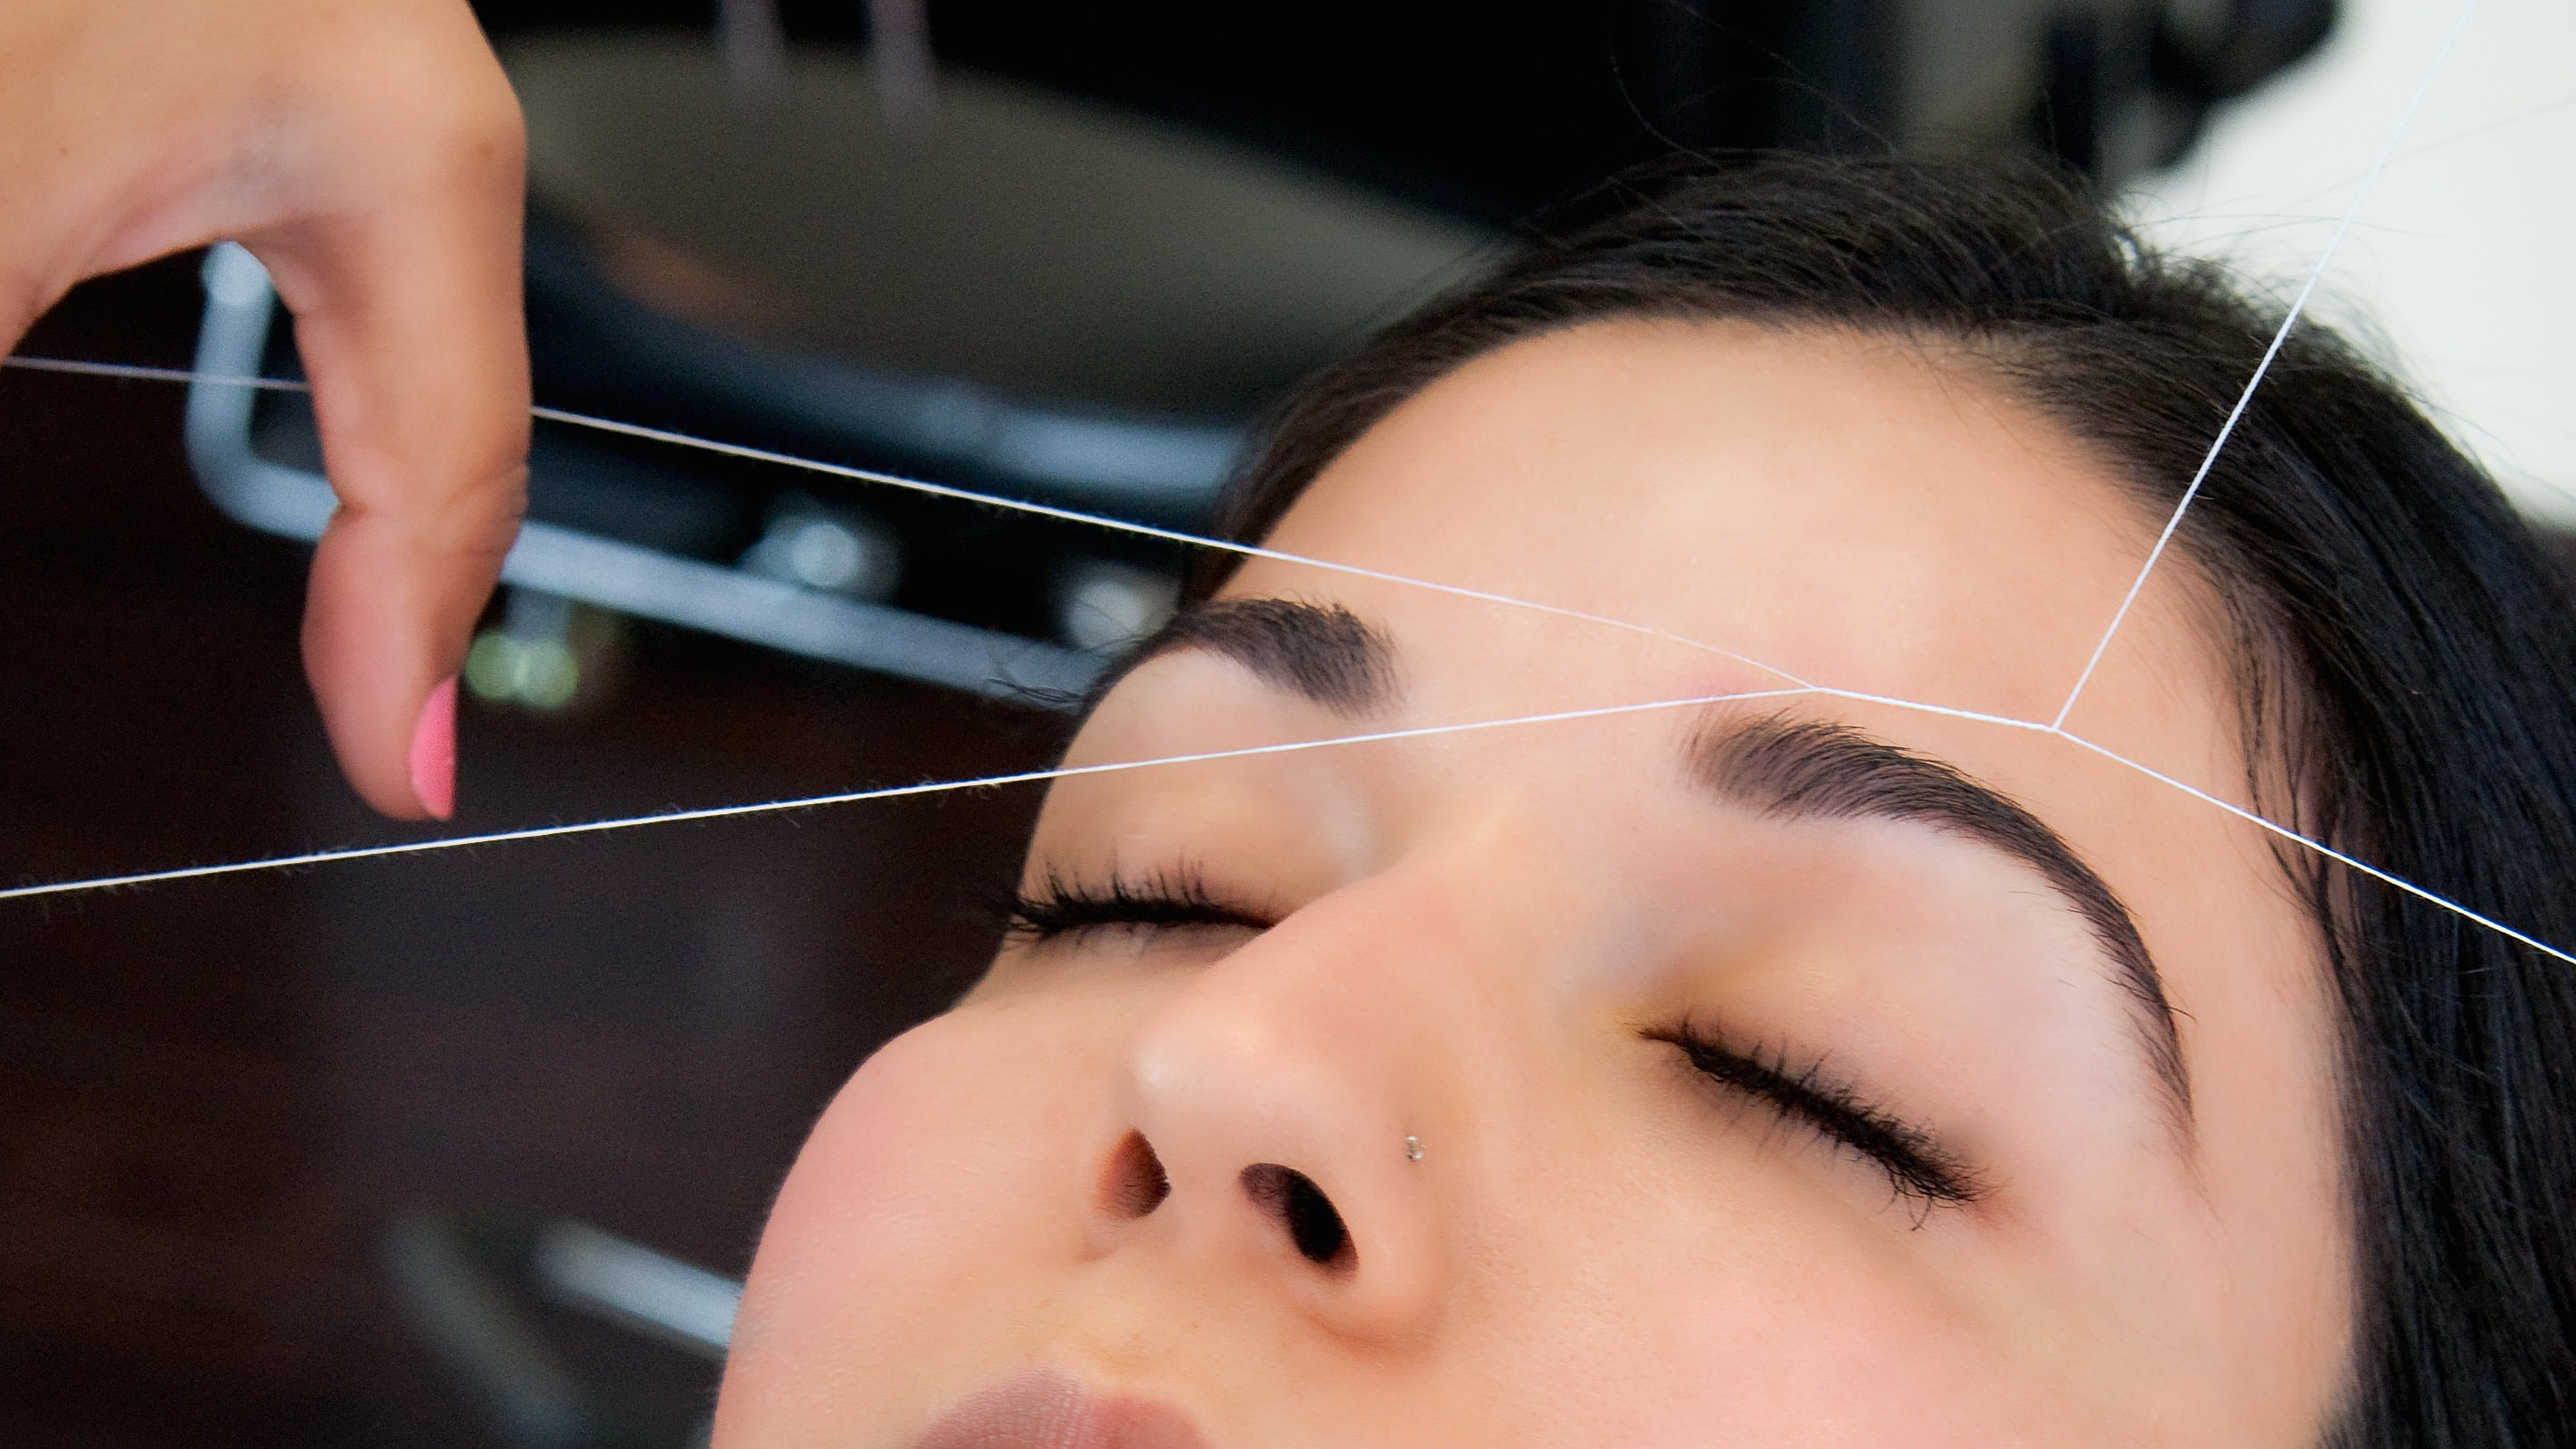 Image result for PARLOUR THREADING APPOINTMENT